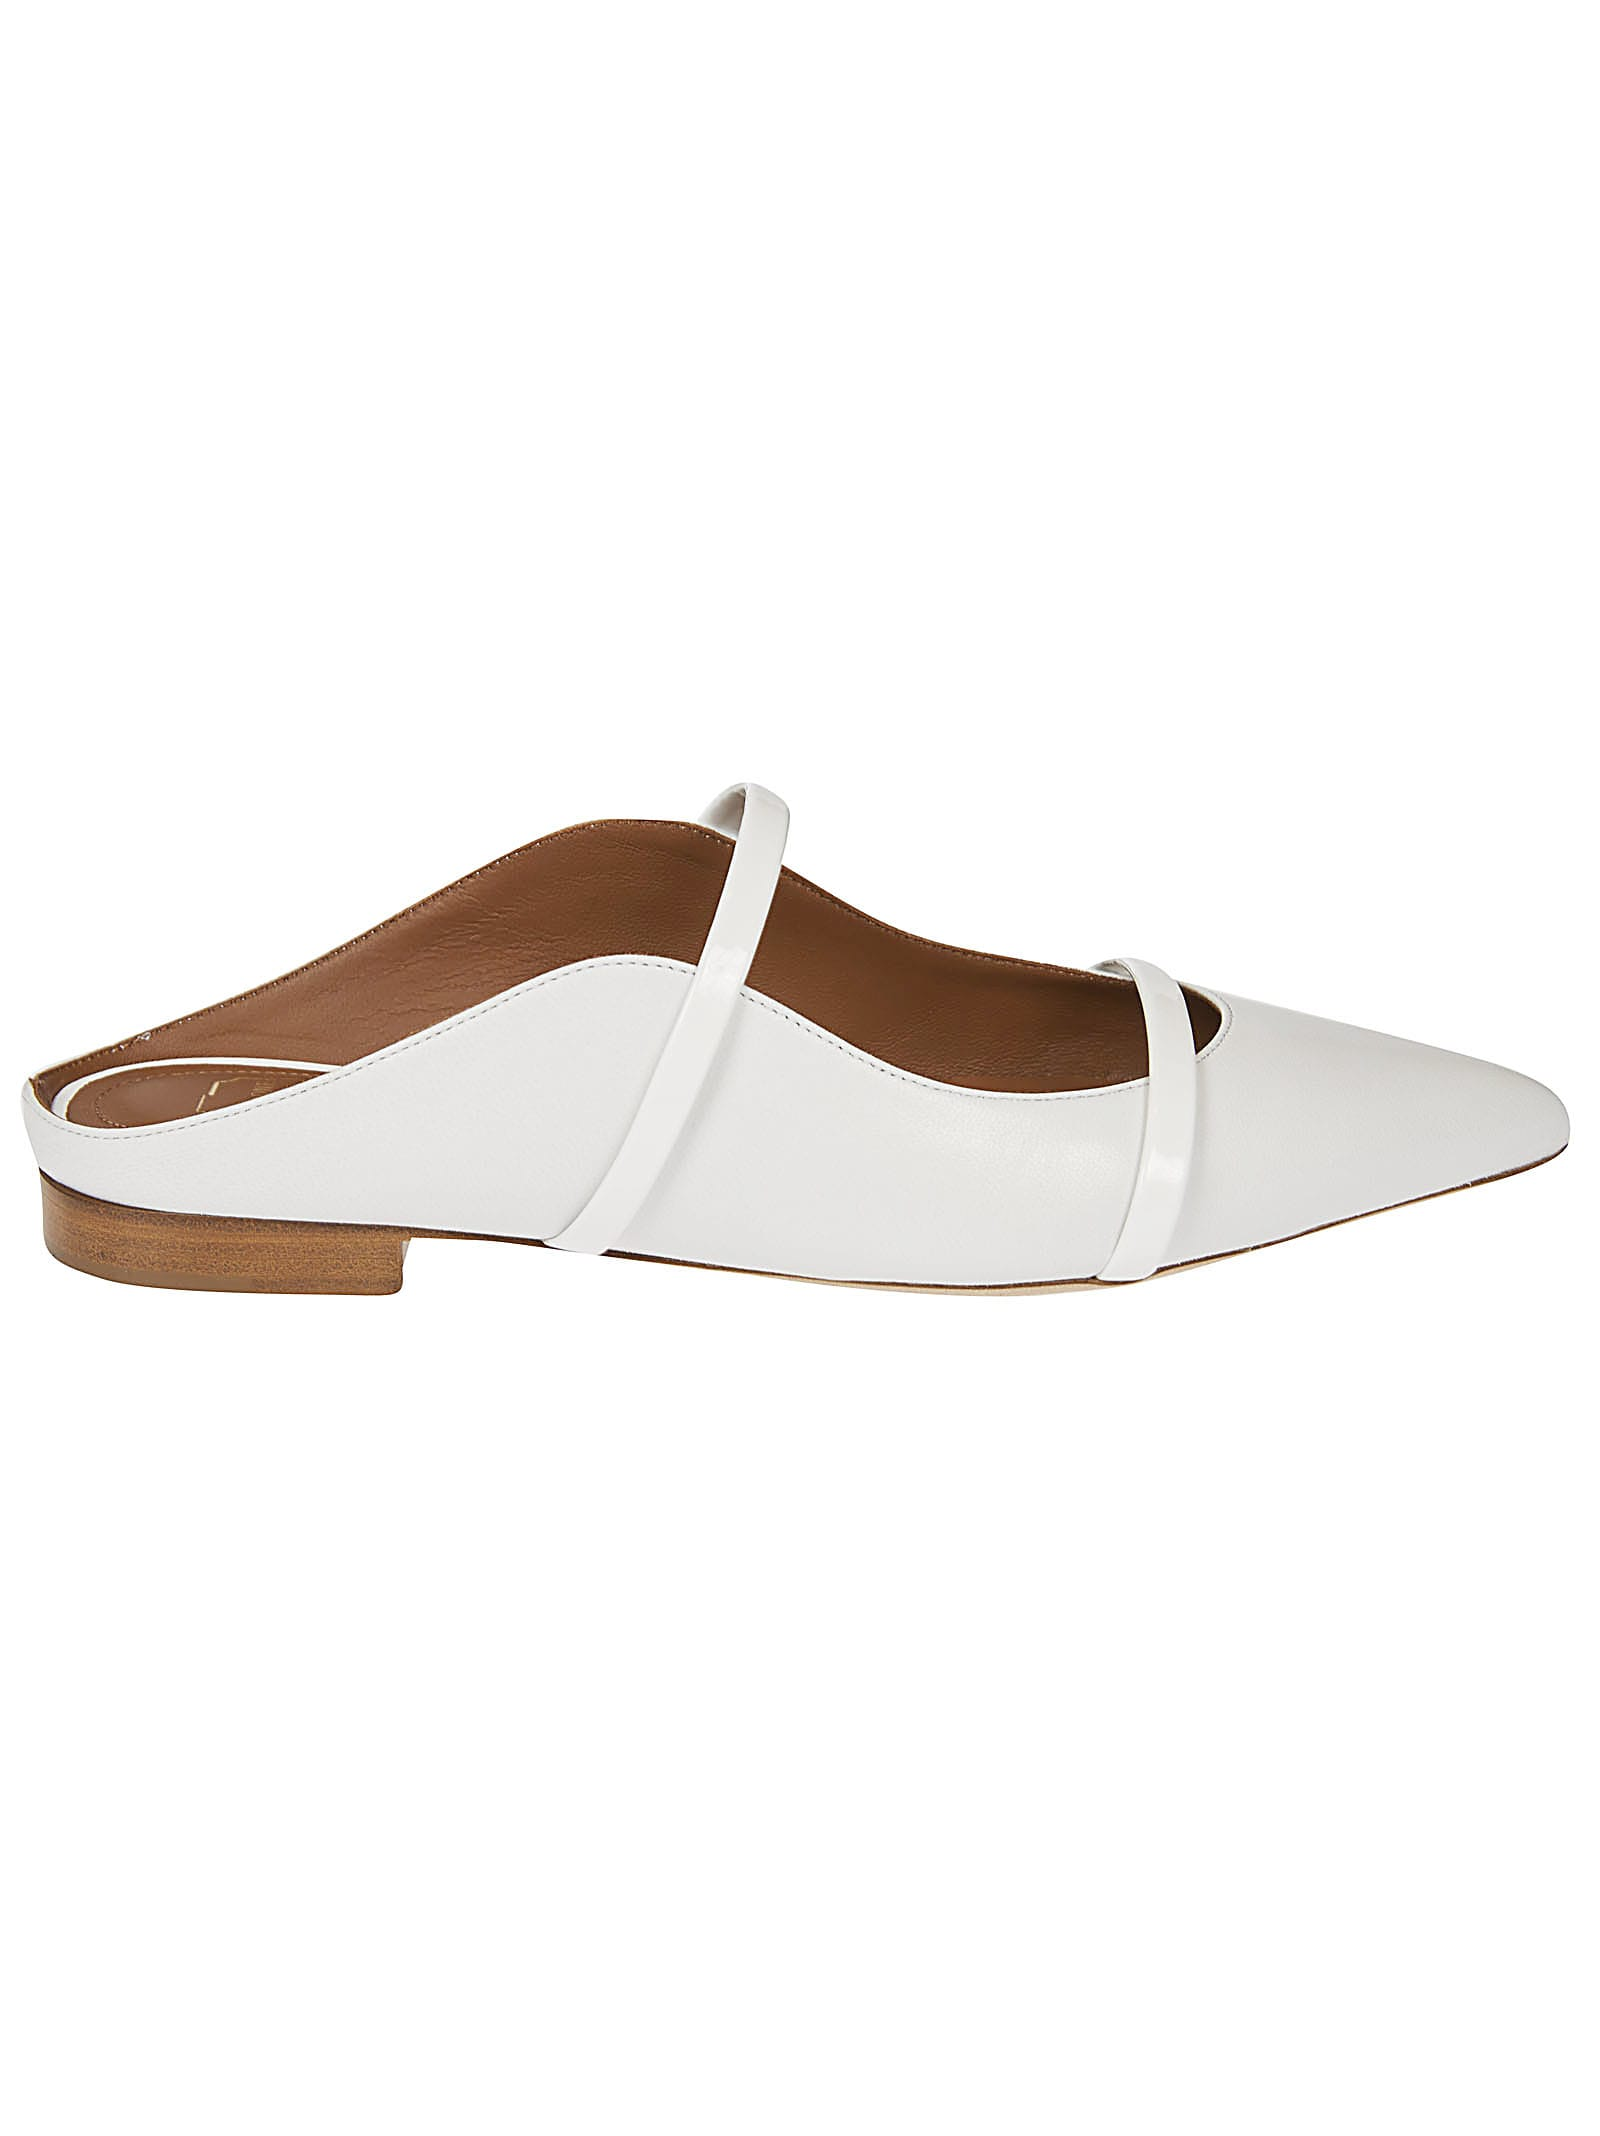 Malone Souliers Flat Shoes   italist